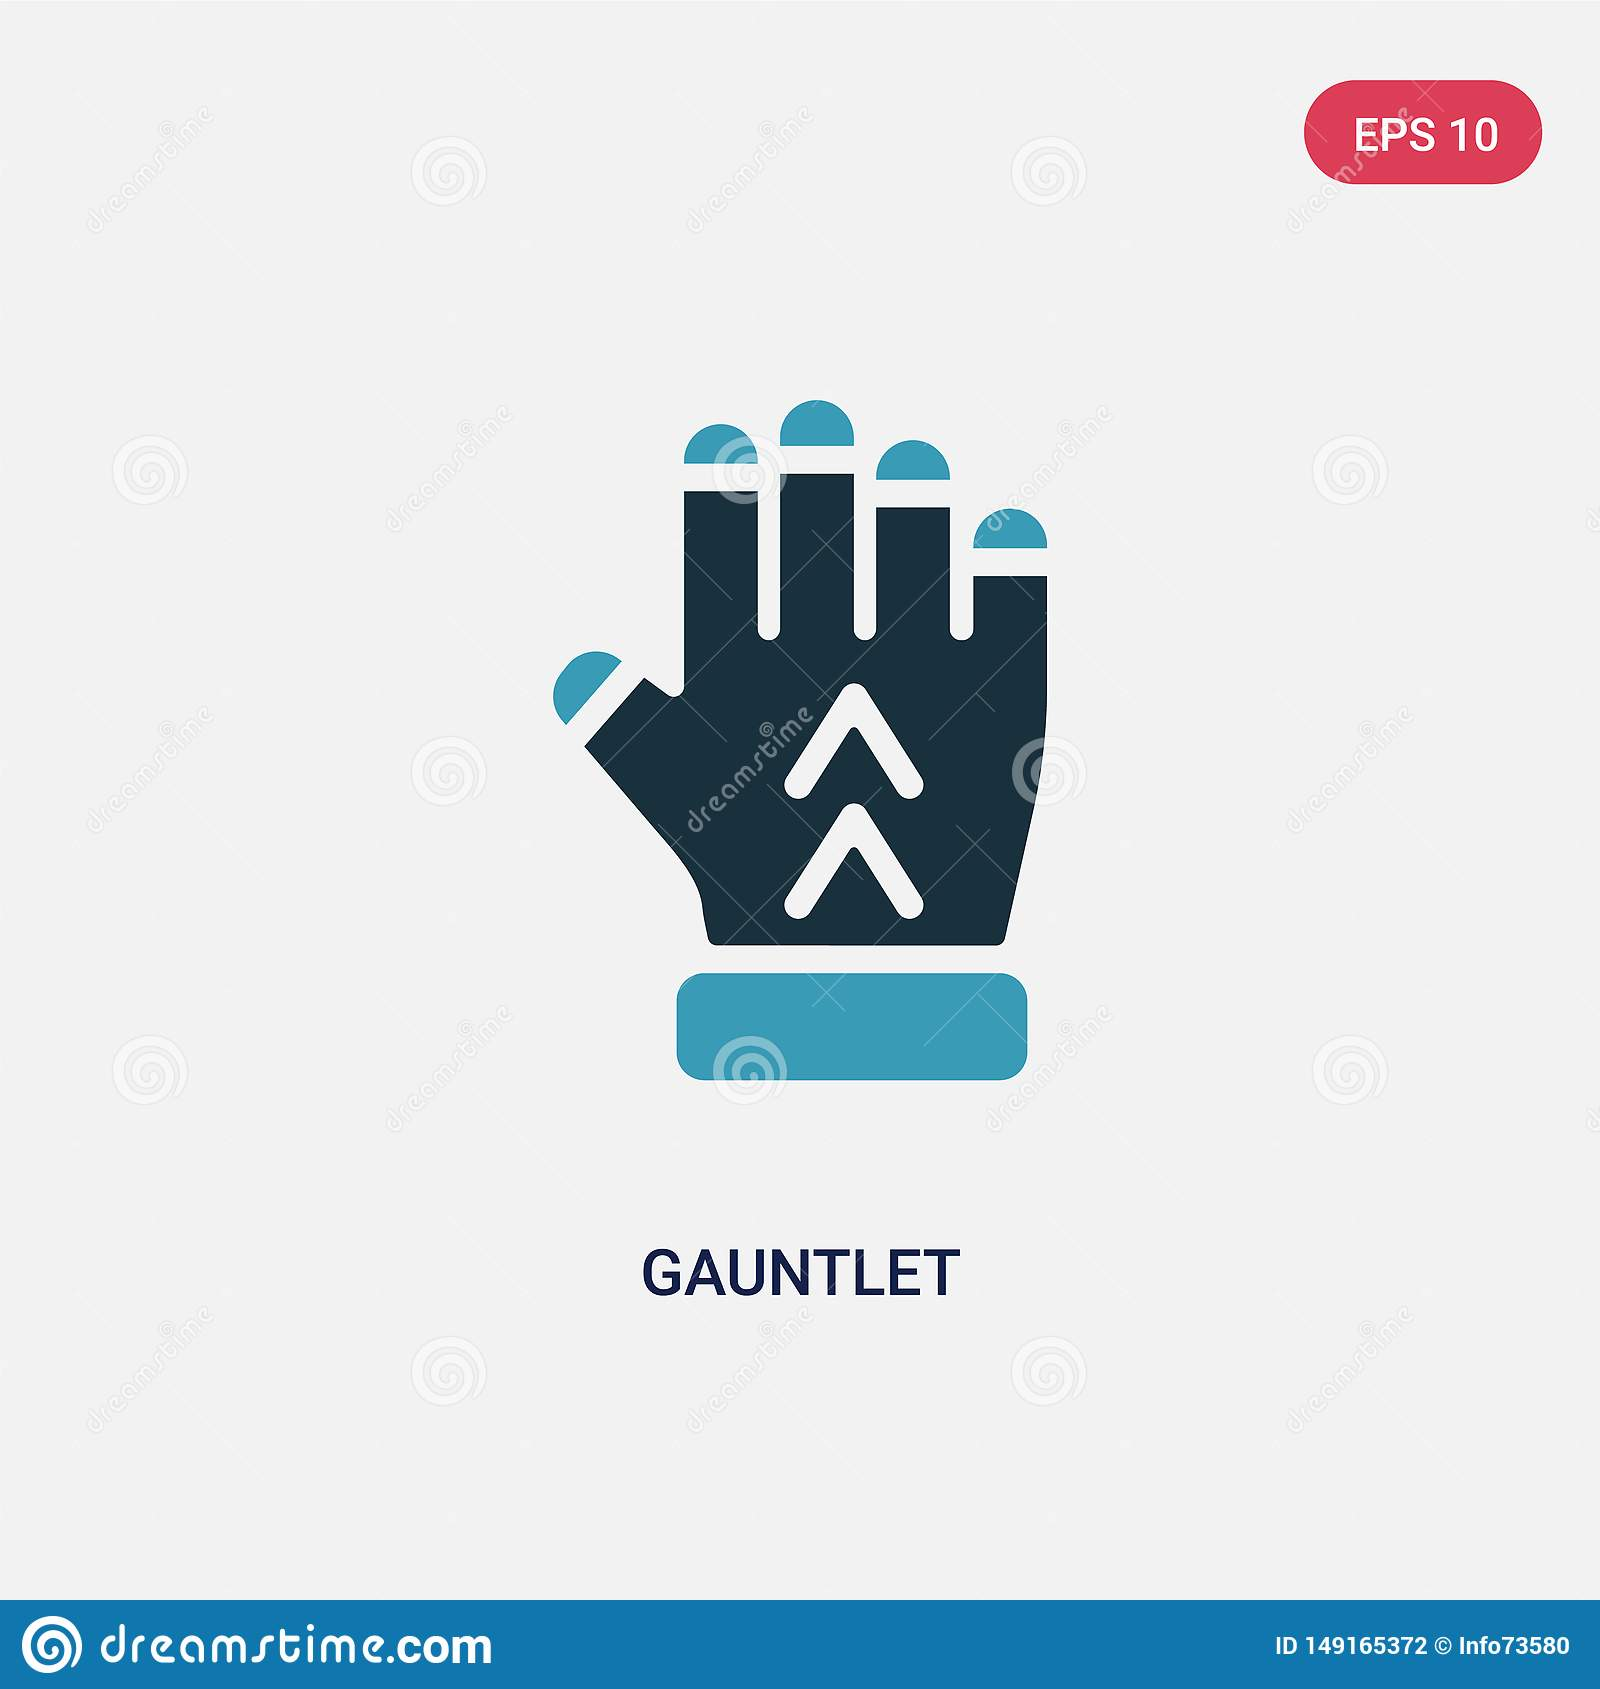 Two Color Gauntlet Vector Icon From Shapes Concept  Isolated